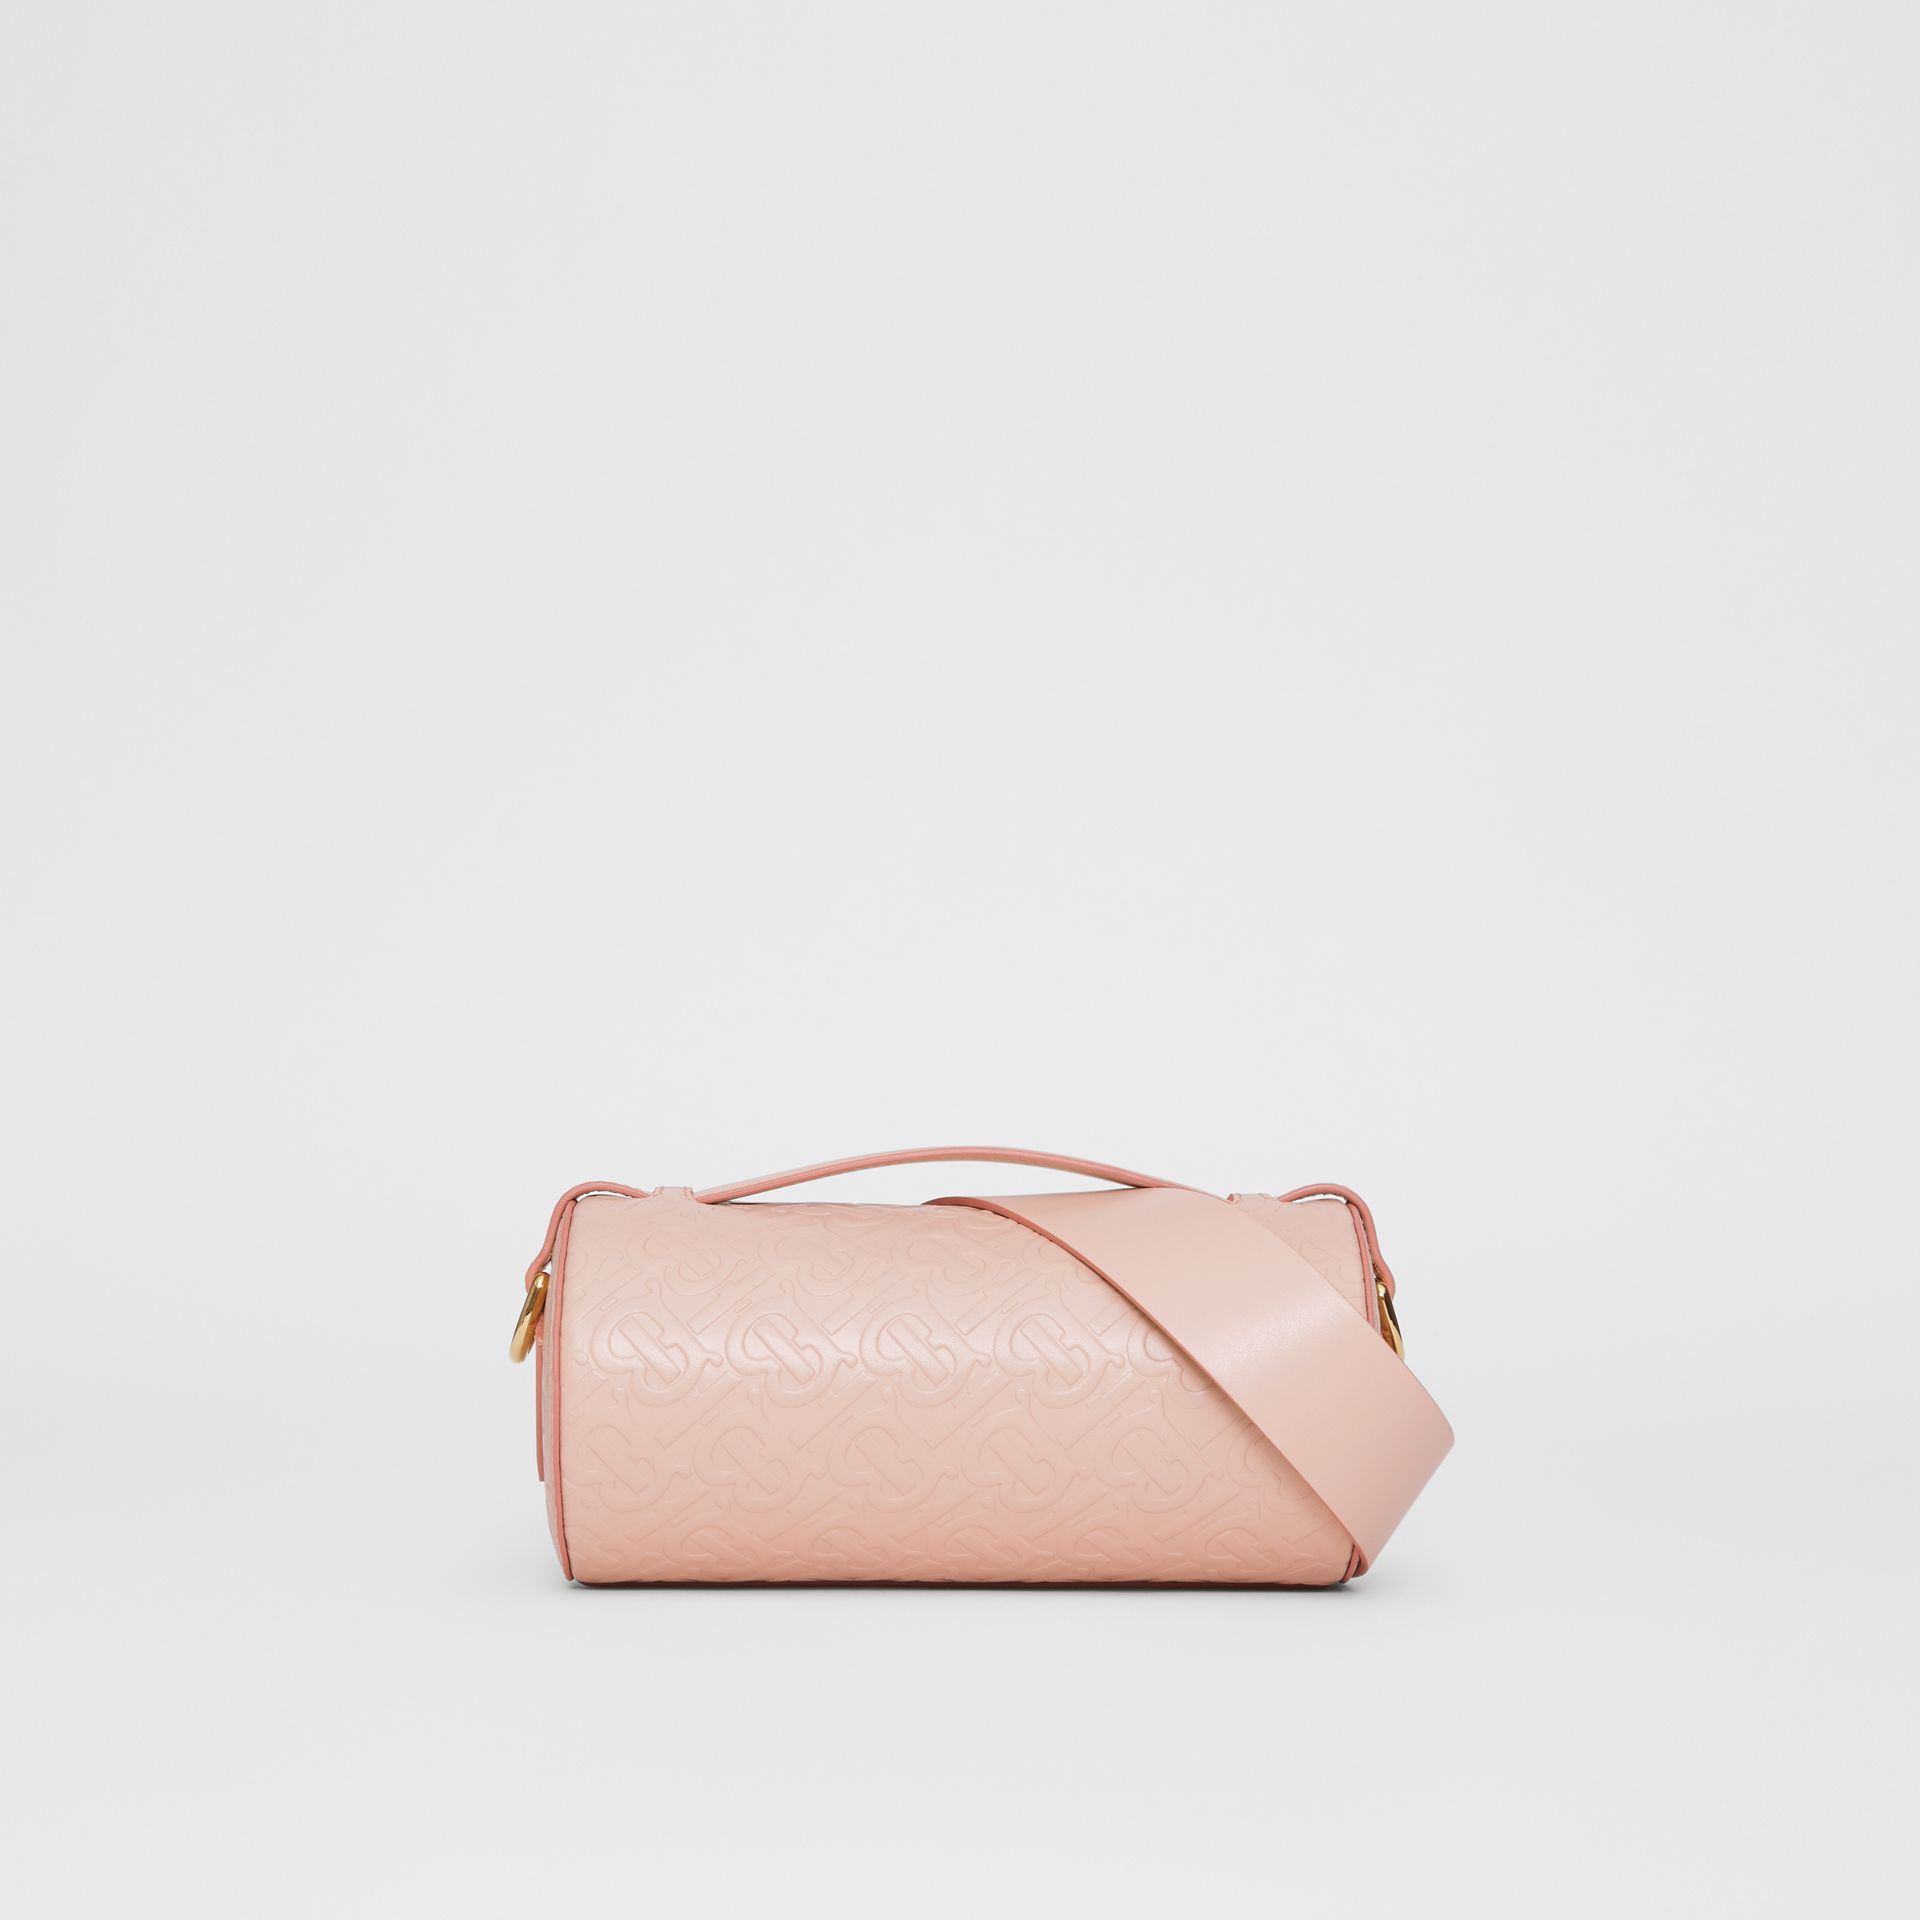 The Monogram Leather Barrel Bag in Rose Beige - Women | Burberry - gallery image 5